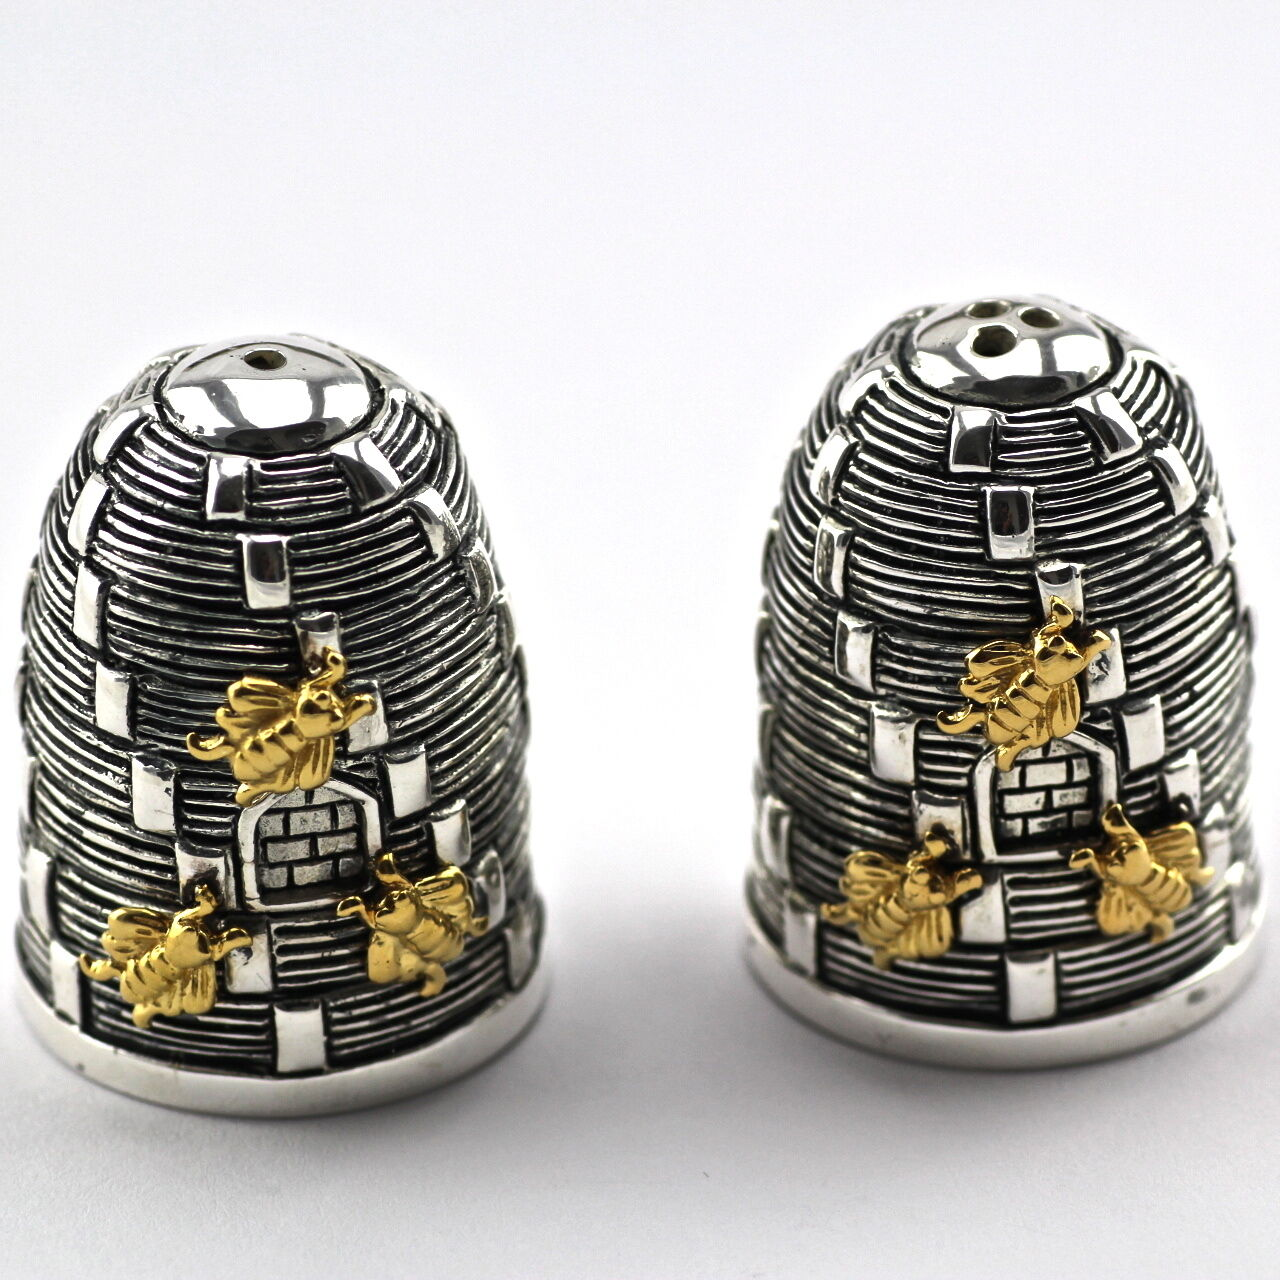 Novelty Victorian Style Beehive Bees Salt And Pepper